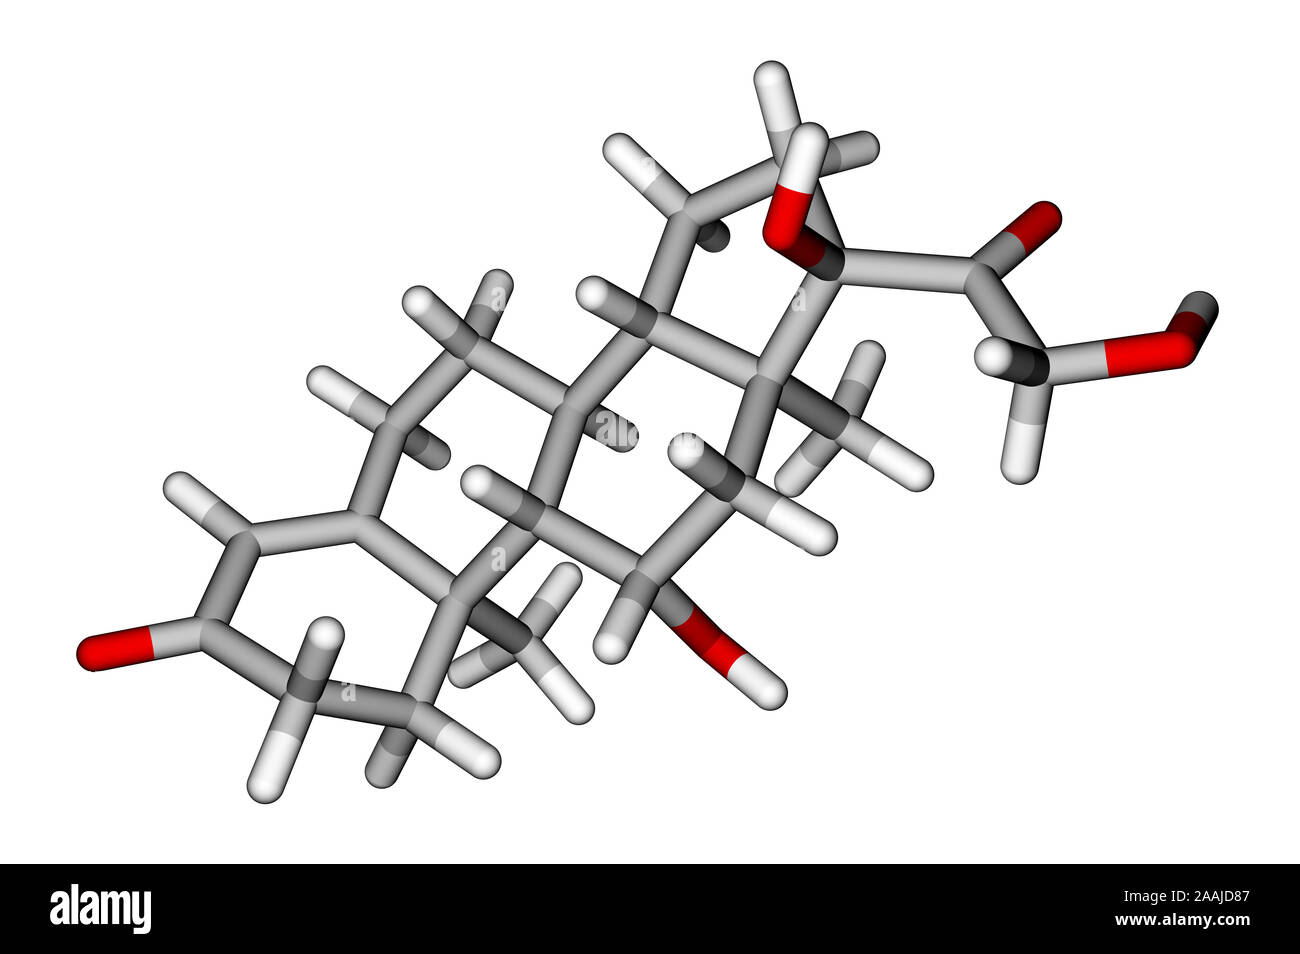 Cortisol sticks molecular model Stock Photo